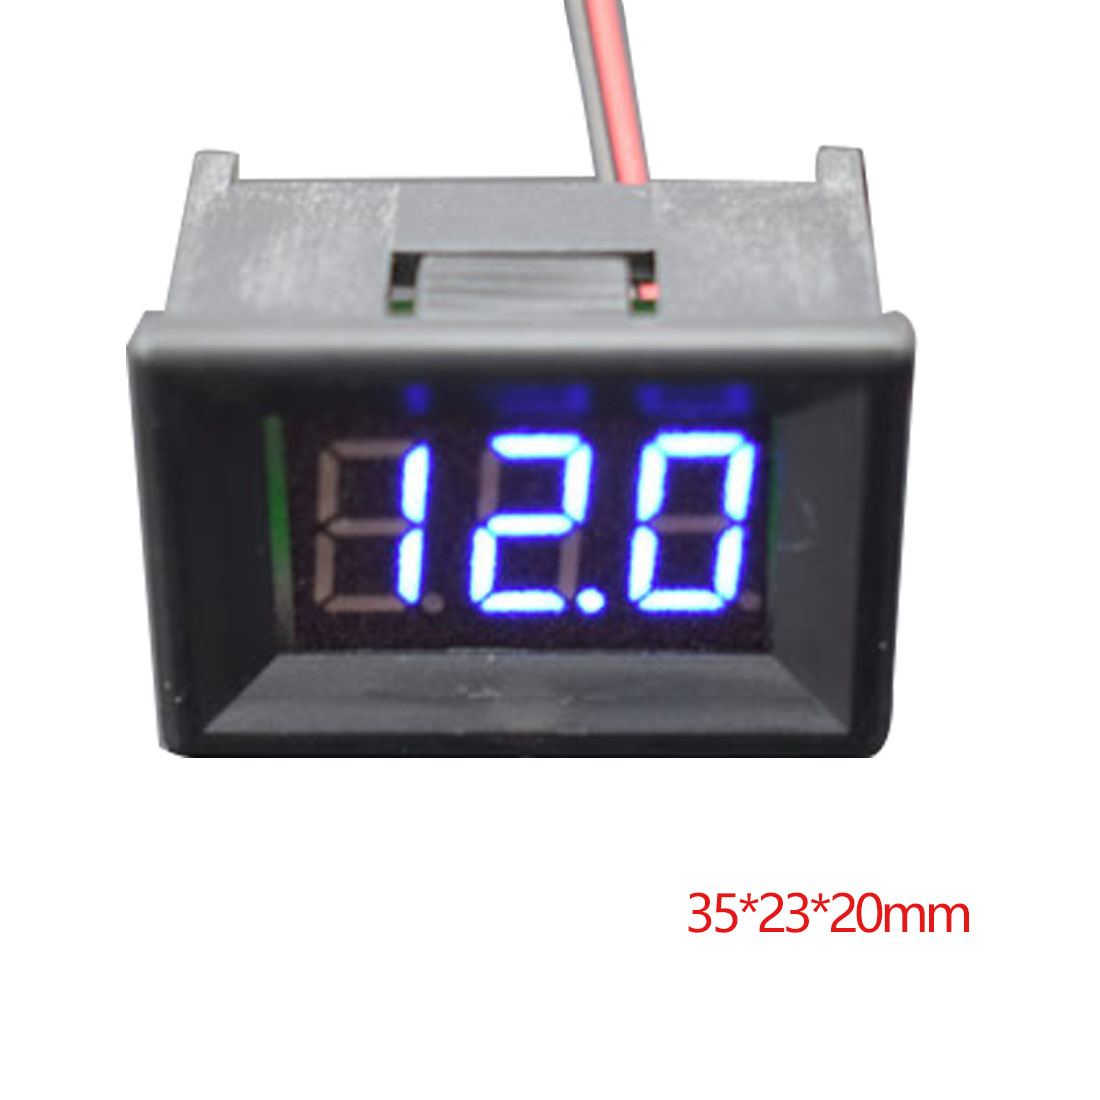 0 36 inch Digital Voltmeter Two Wires LED Display Blue DC 4 50V 30 0V Digital Panel Voltage Meter Voltage Detector Monitor in Voltage Meters from Tools